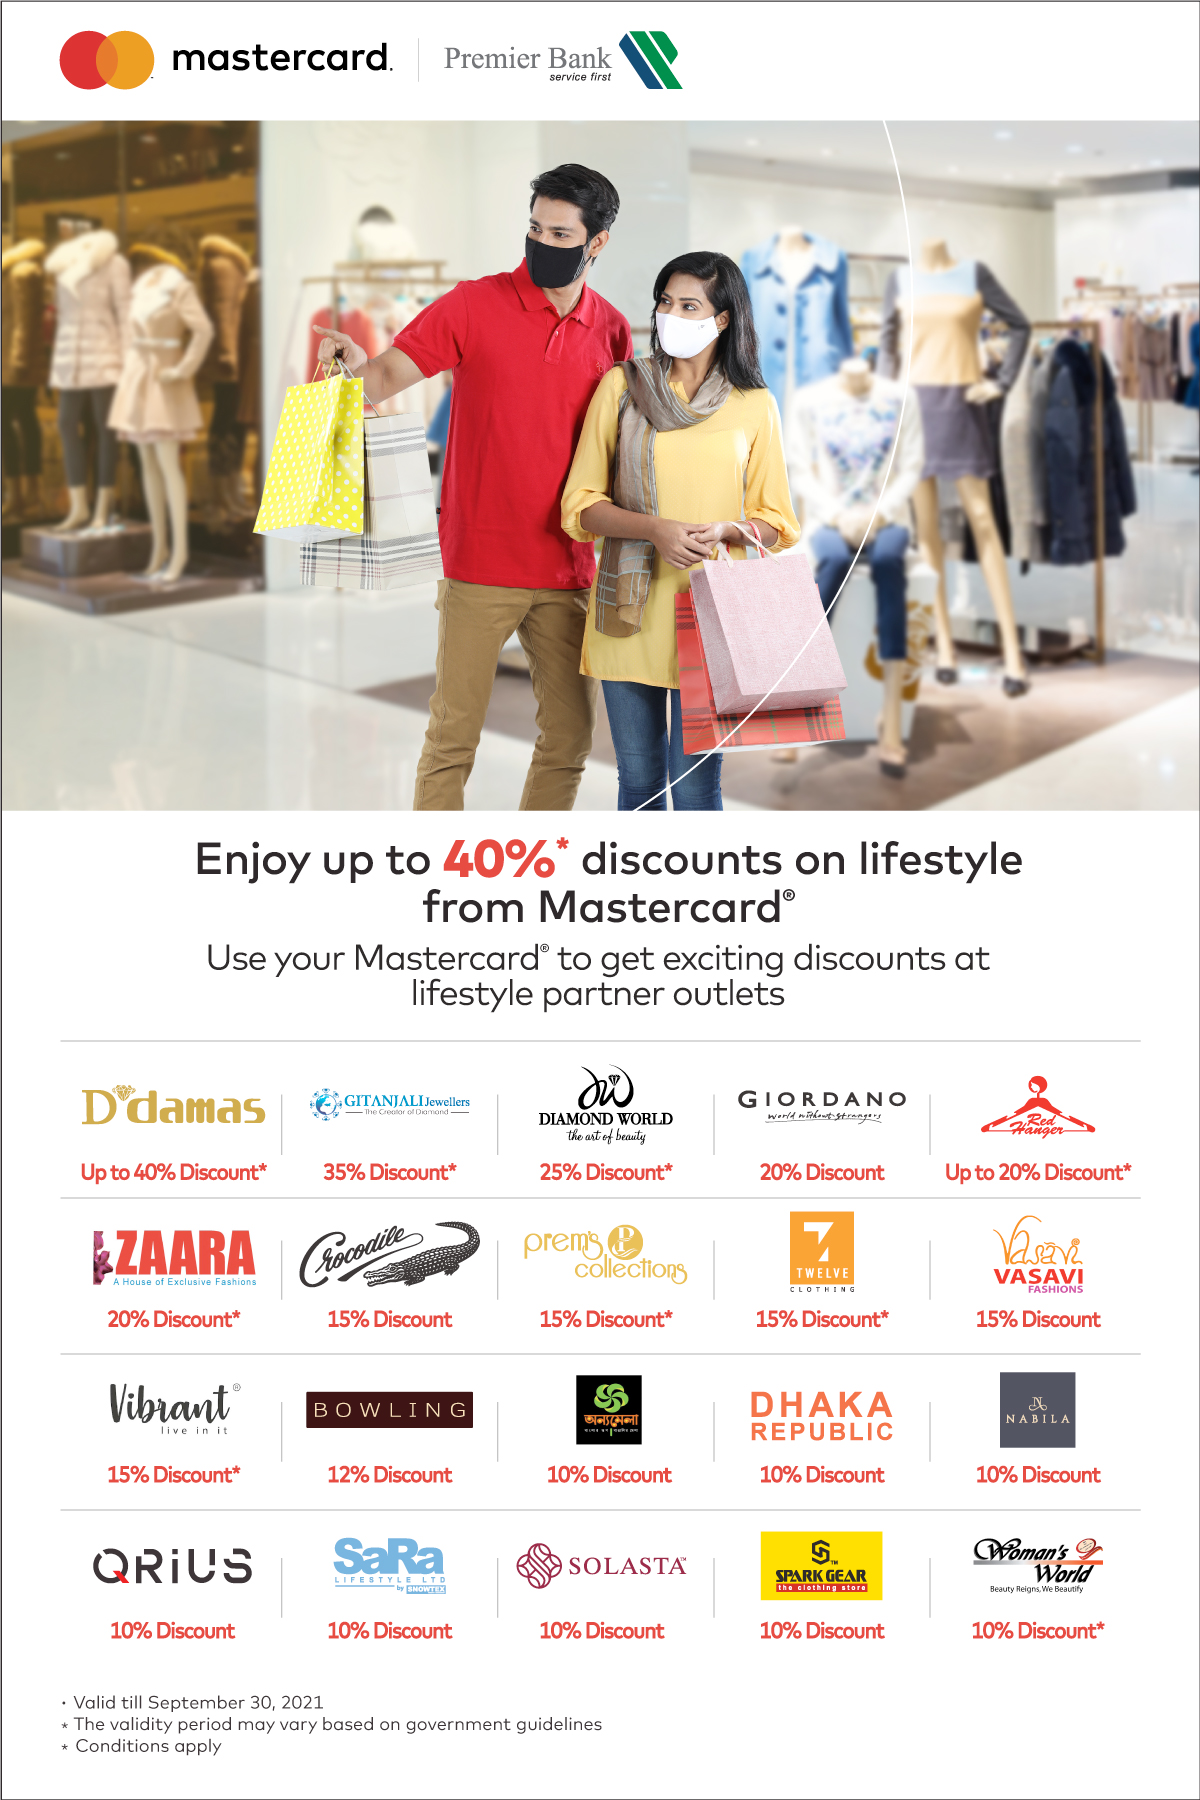 Enjoy Discounts on Lifestyle by Premier Bank Mastercard